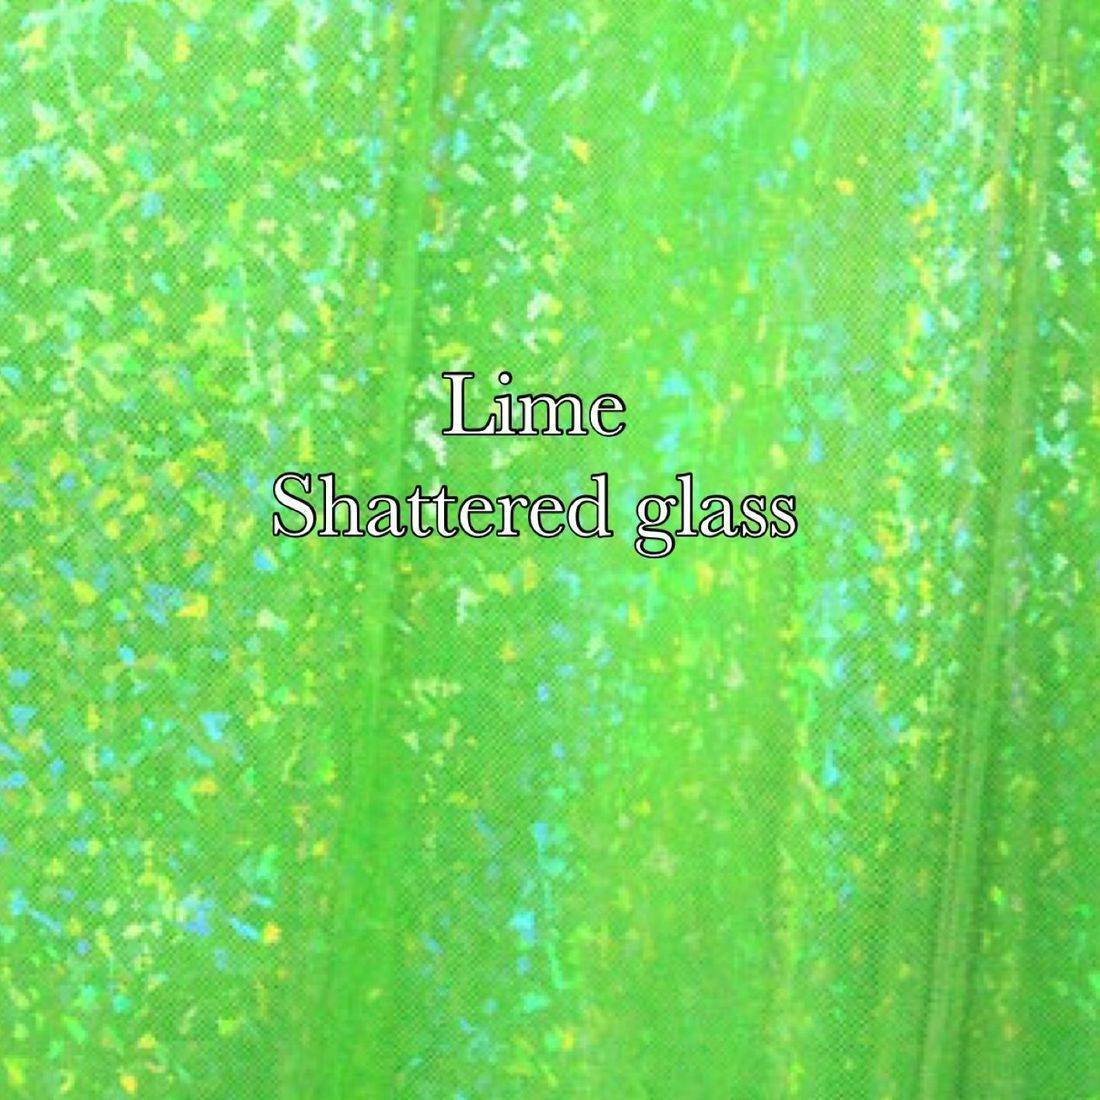 Lime shattered glass